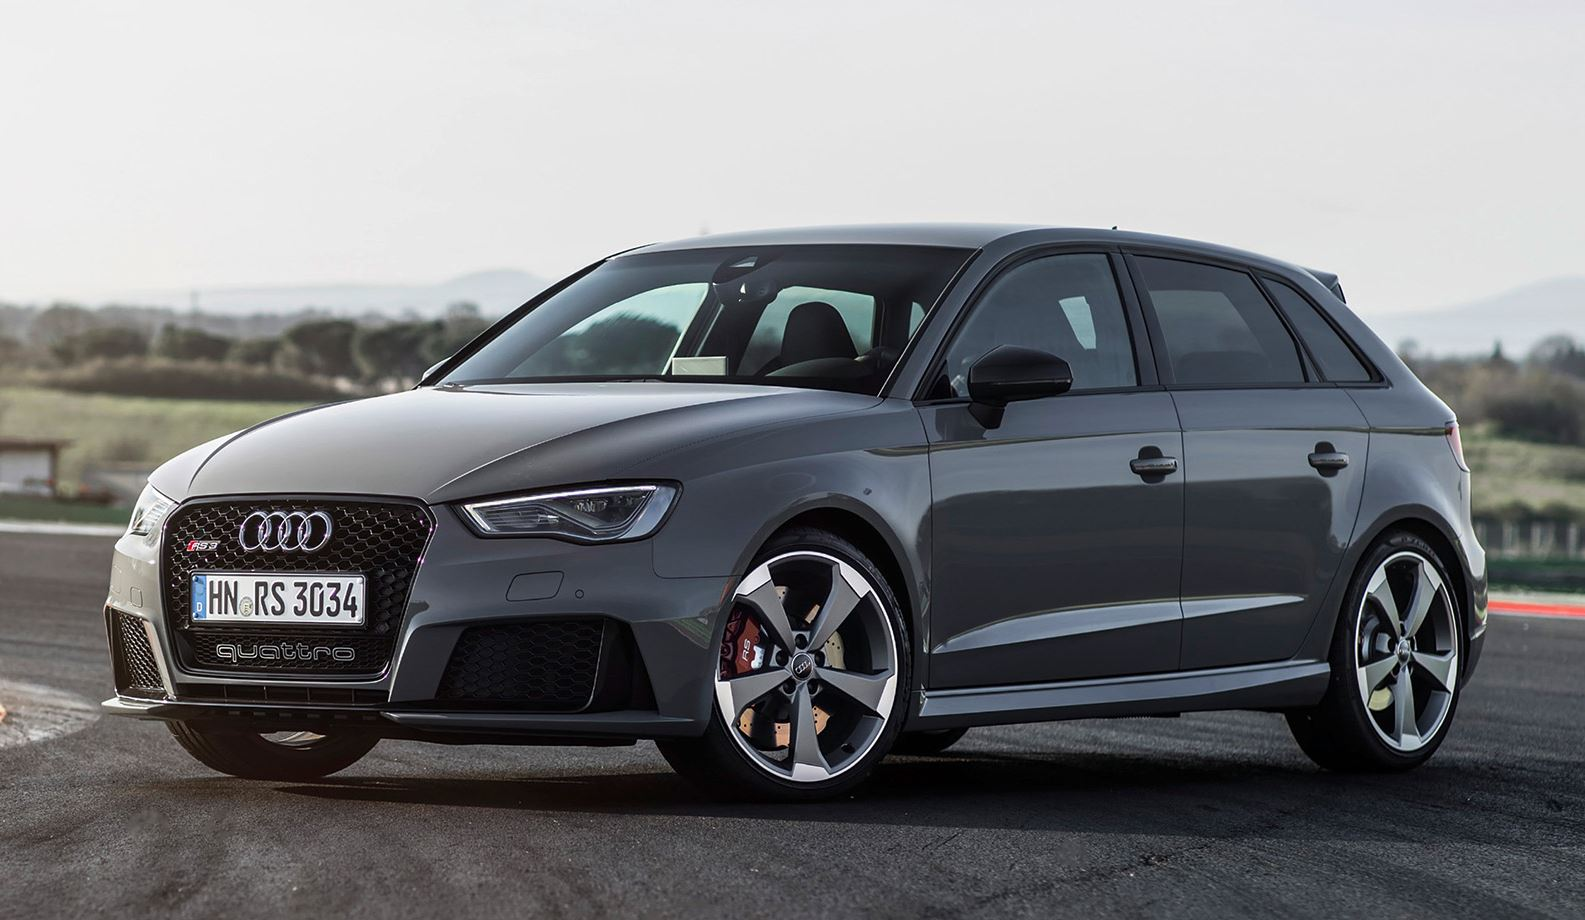 New Audi Rs3 Sportback Pricing For South Africa Leaked